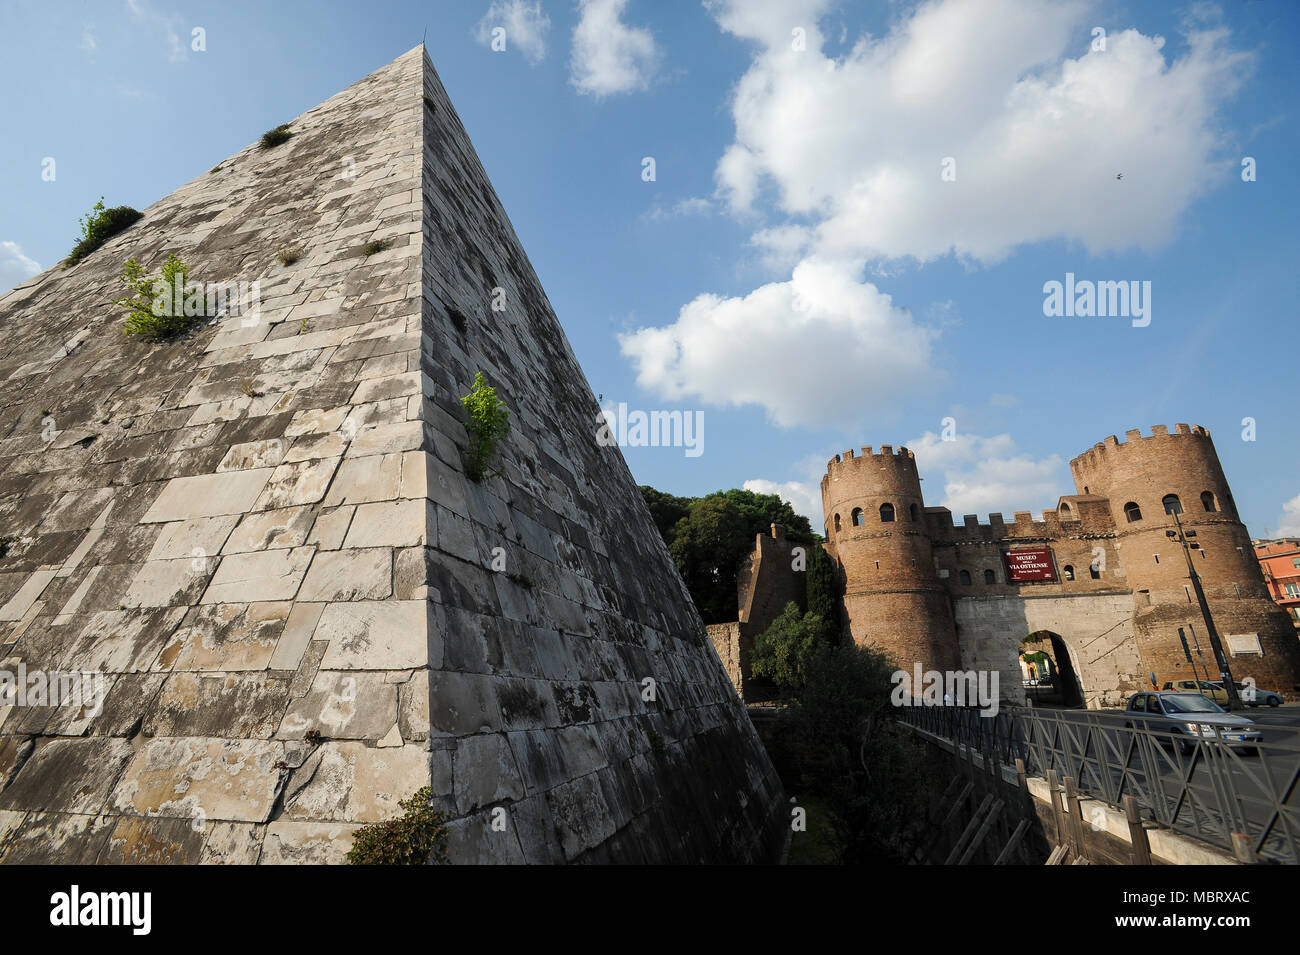 Piramide di Caio Cestio or Piramide Cestia (Pyramid of Cestius) and Porta San Paolo (San Paolo Gate) in Aurelian Walls in Historic Centre of Rome list Stock Photo